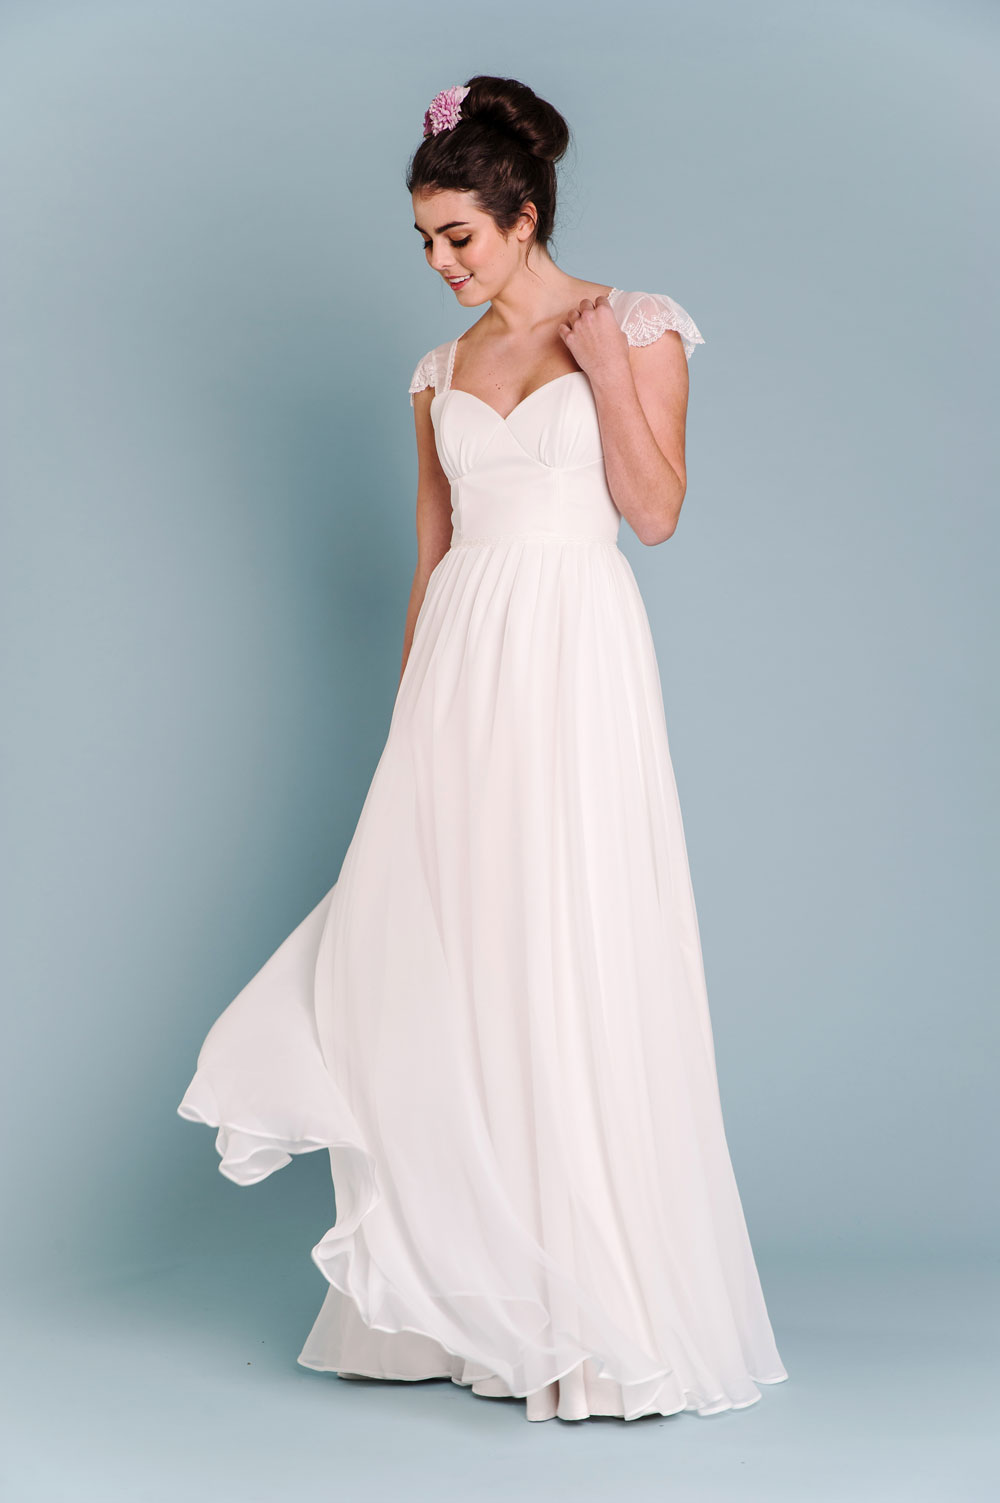 SALLY EAGLE BRIDAL – penny lane